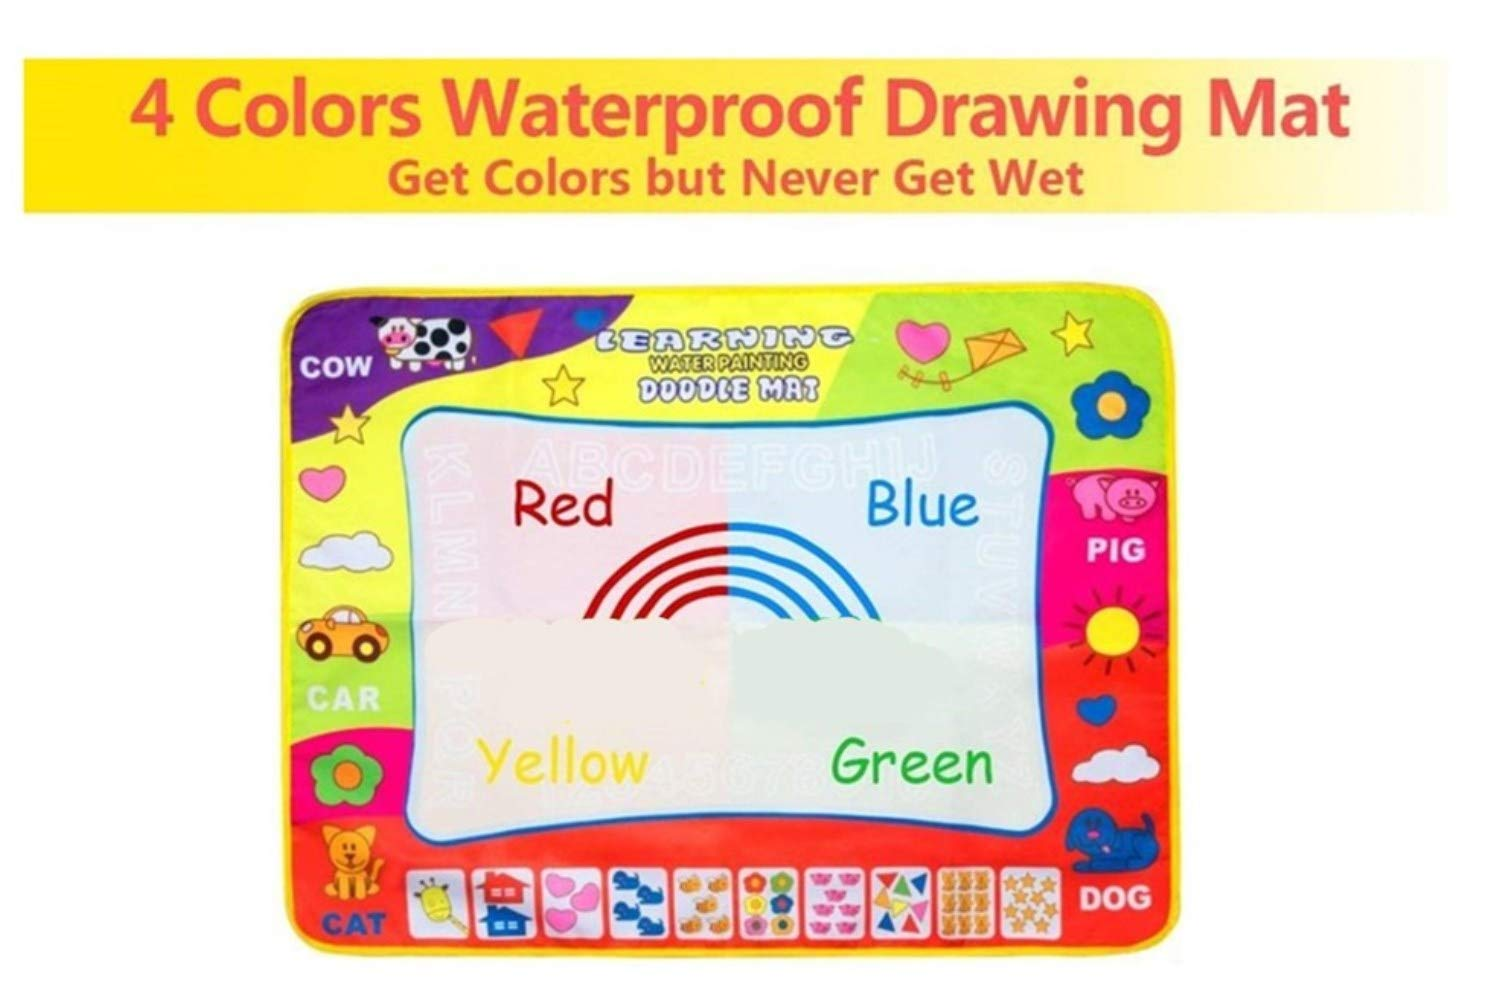 AGXuanYi Magic Water Drawing Mat 4 Color Large 31.5 x 23.6in Water Doodle Painting Board Writing Mats with 2 Pens 8 Molds Kids Educational Learning Toy Gift for Boys Girls Toddlers